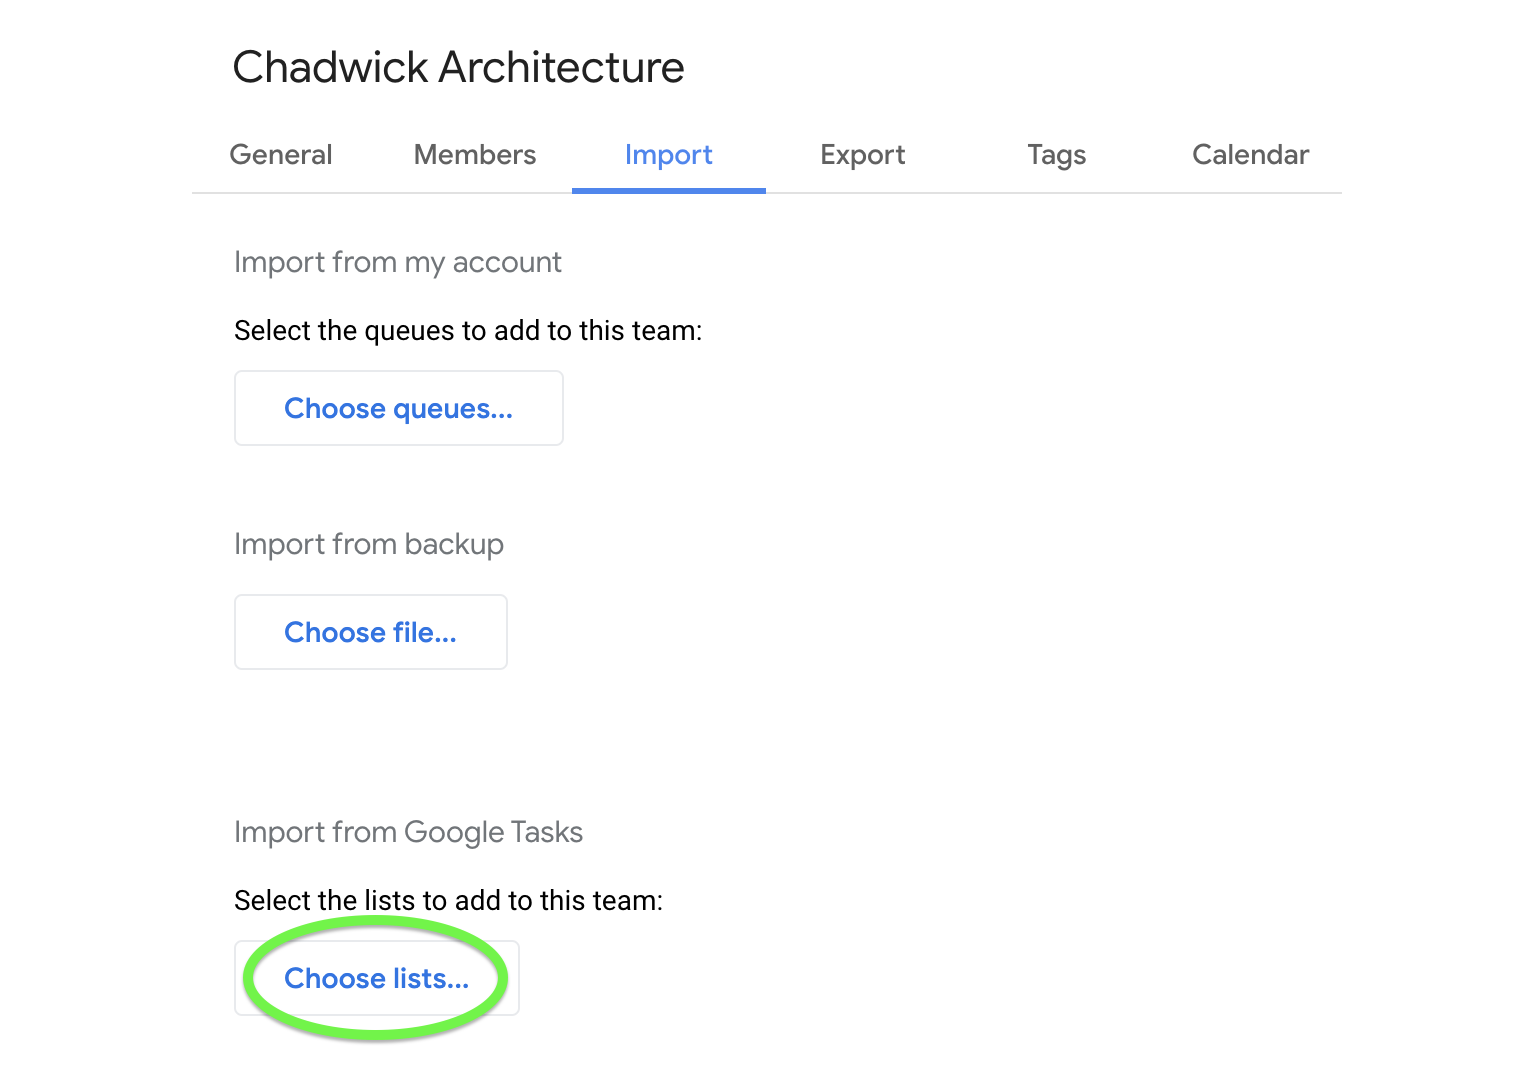 Import from Google Tasks for a one-time migration.